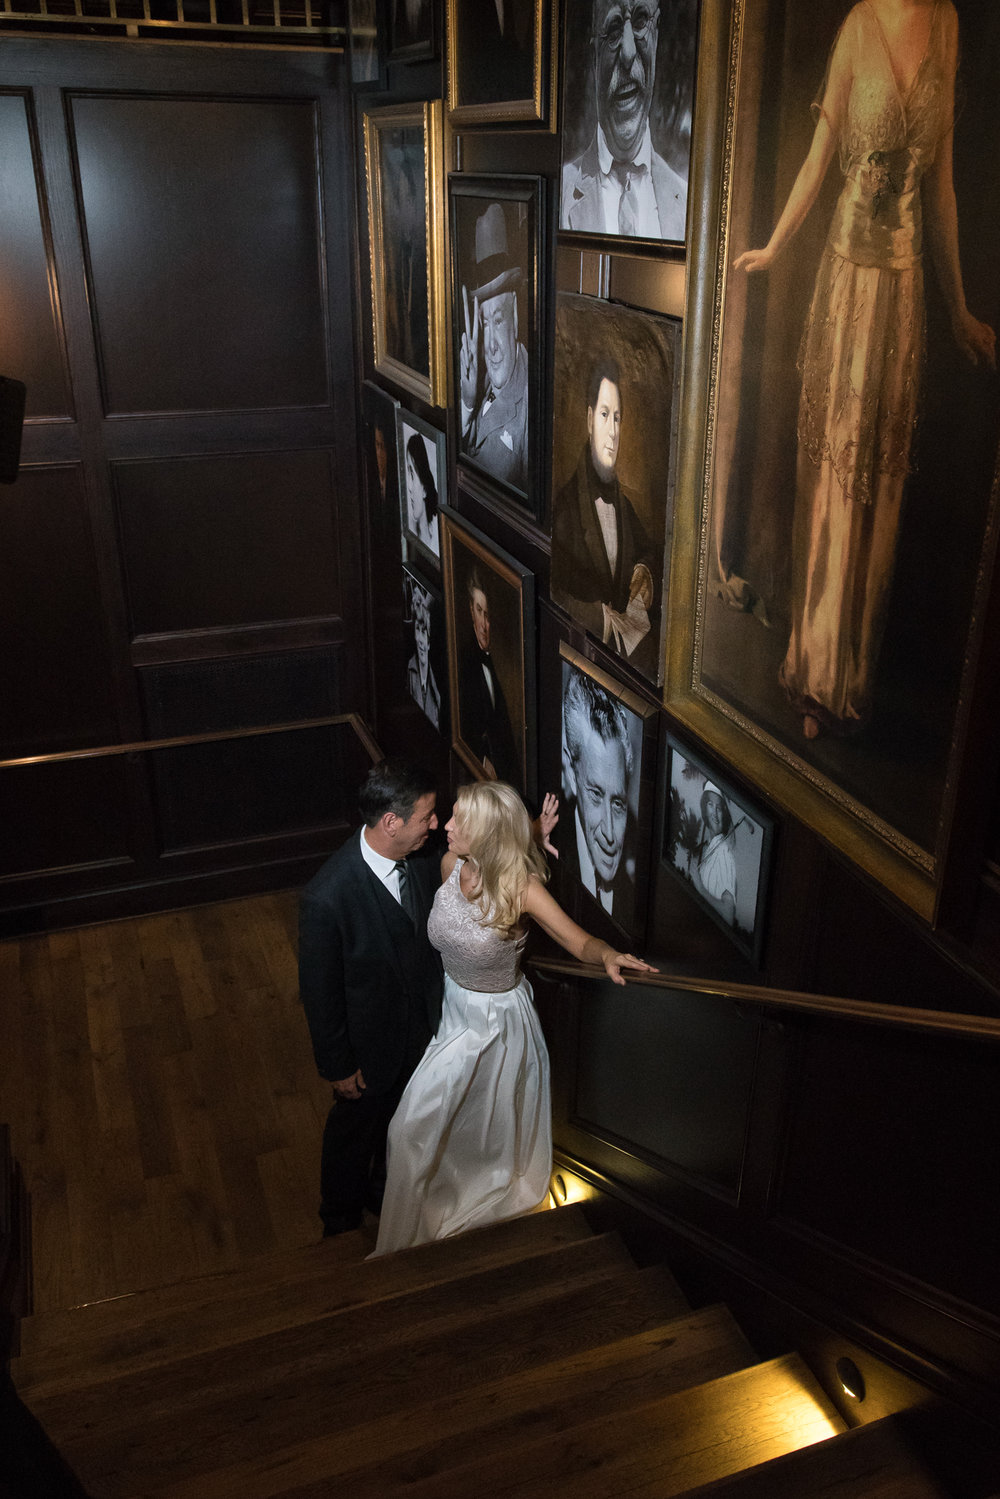 Oxford-Exchange-wedding-photographer